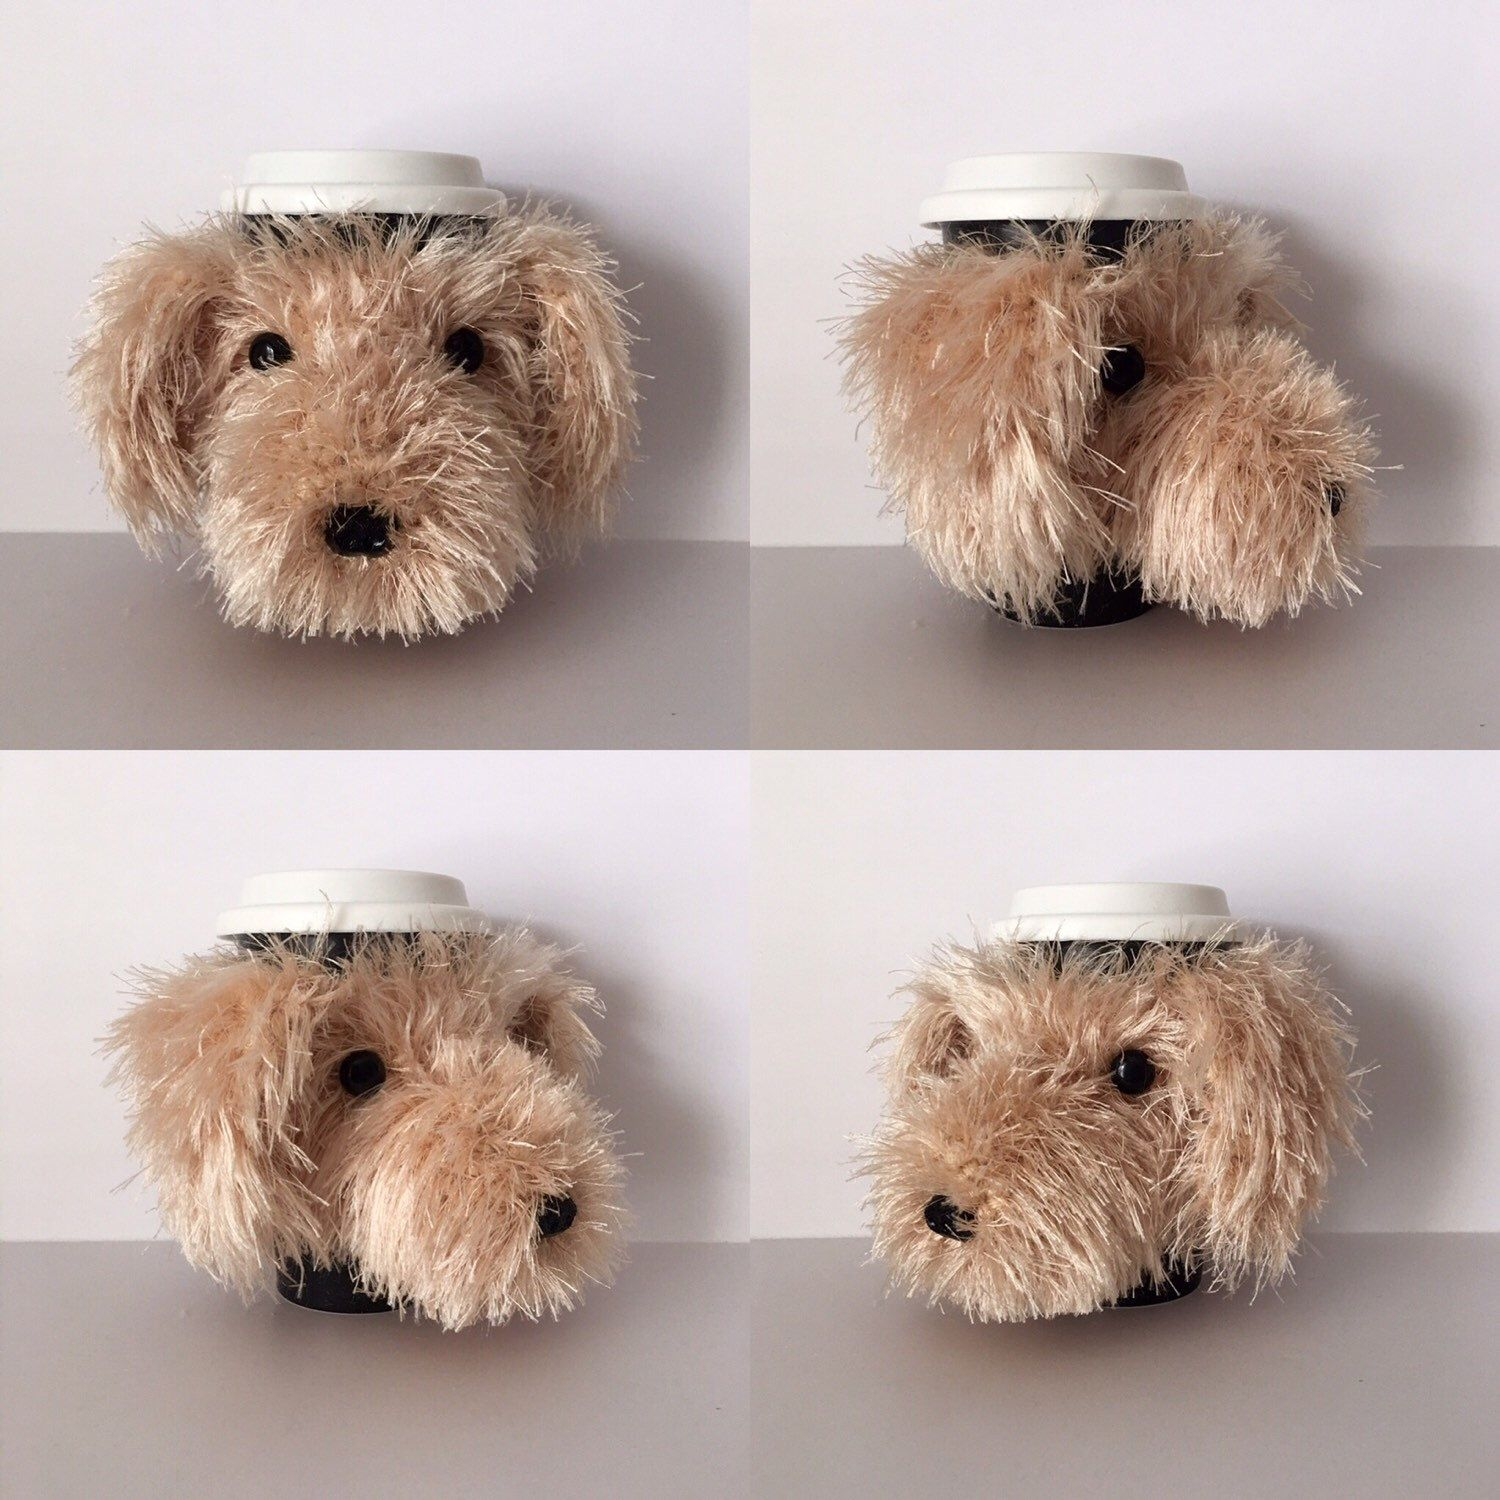 The Labradoodle Mug Cozy is now available as a crochet pattern ...